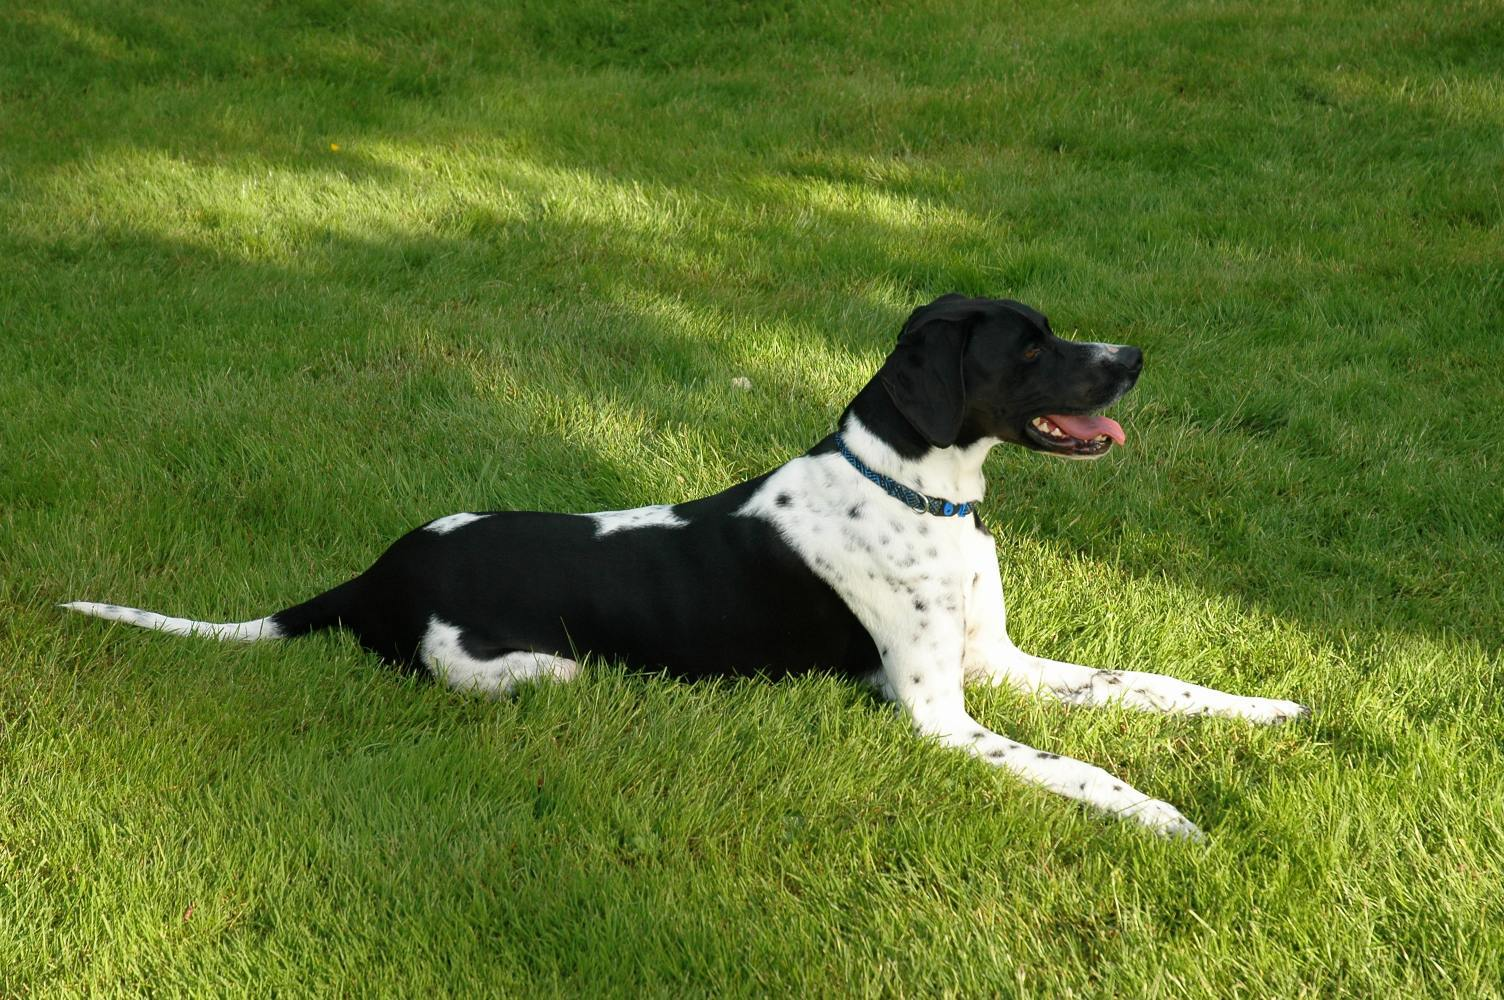 Black and white pointer dog